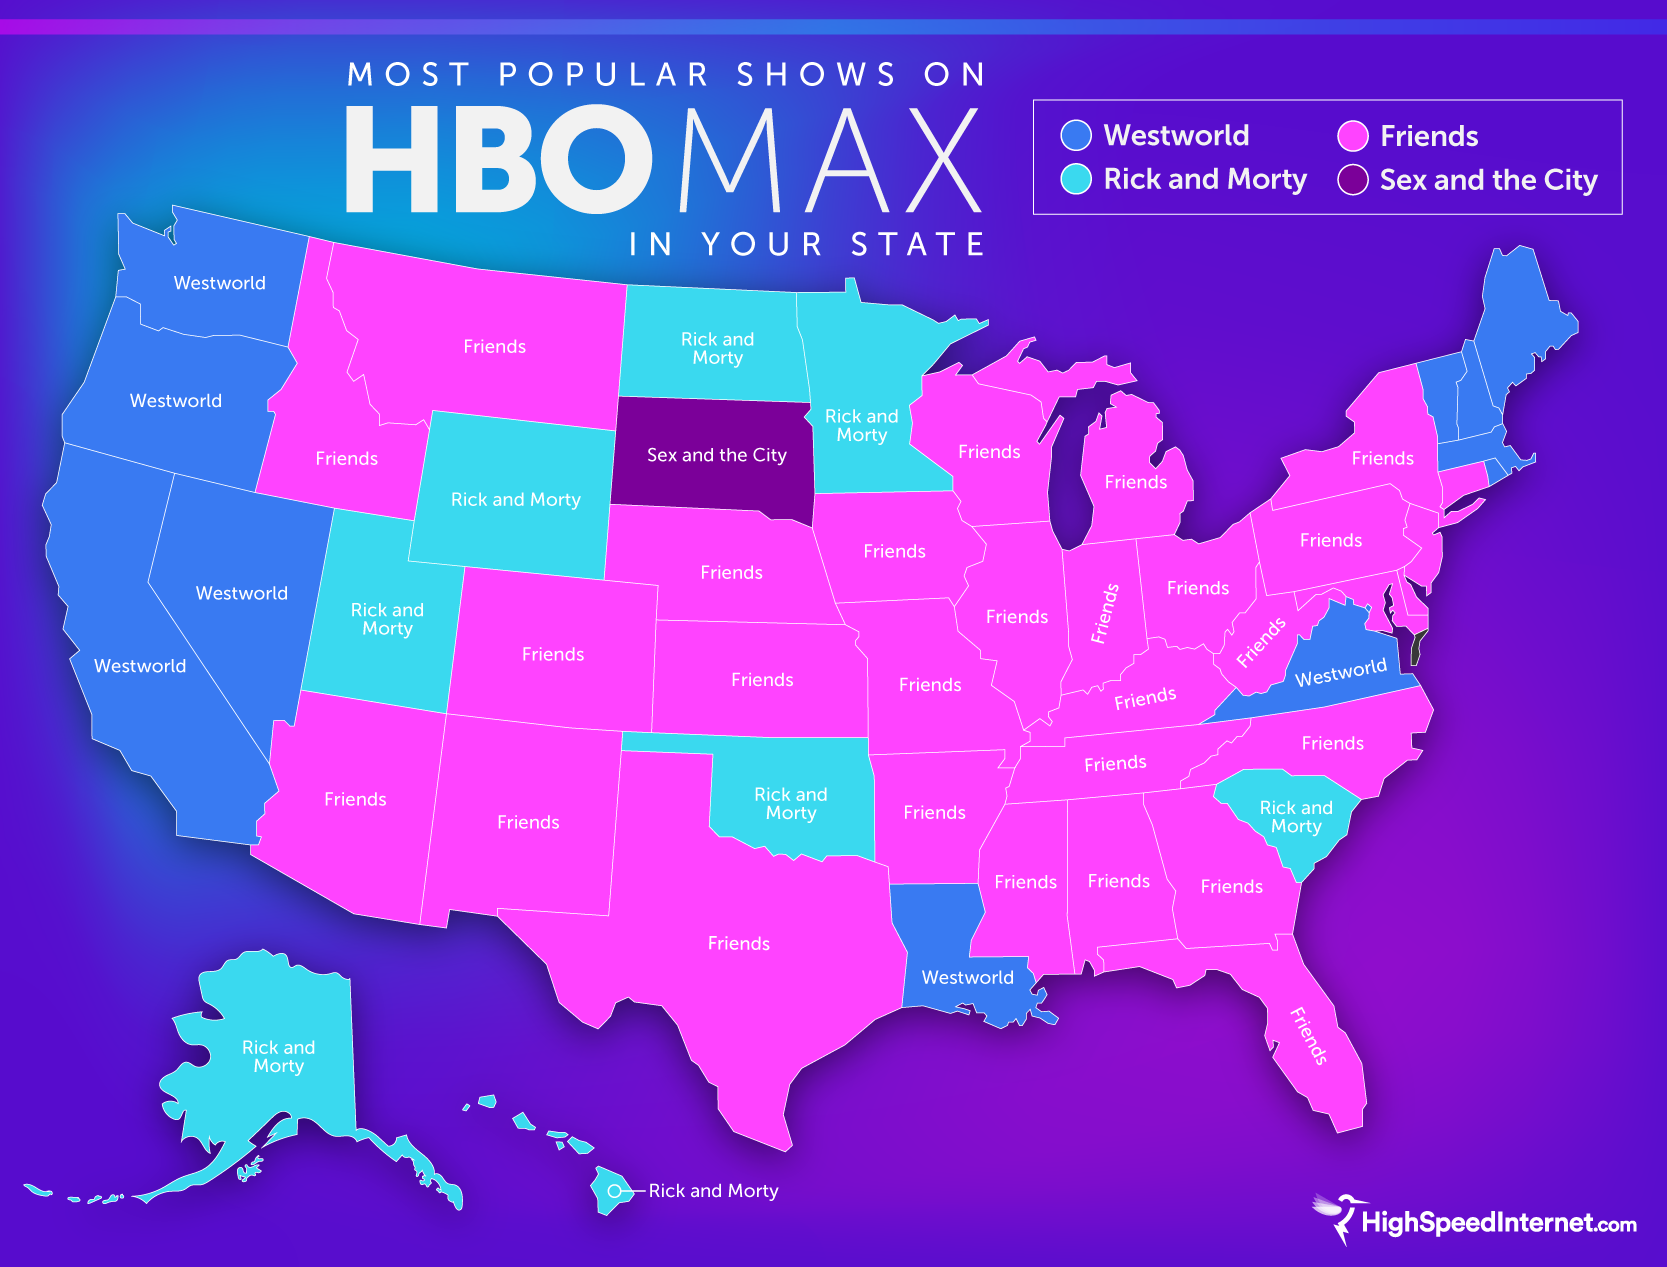 This map highlights each state's favorite HBO Max show